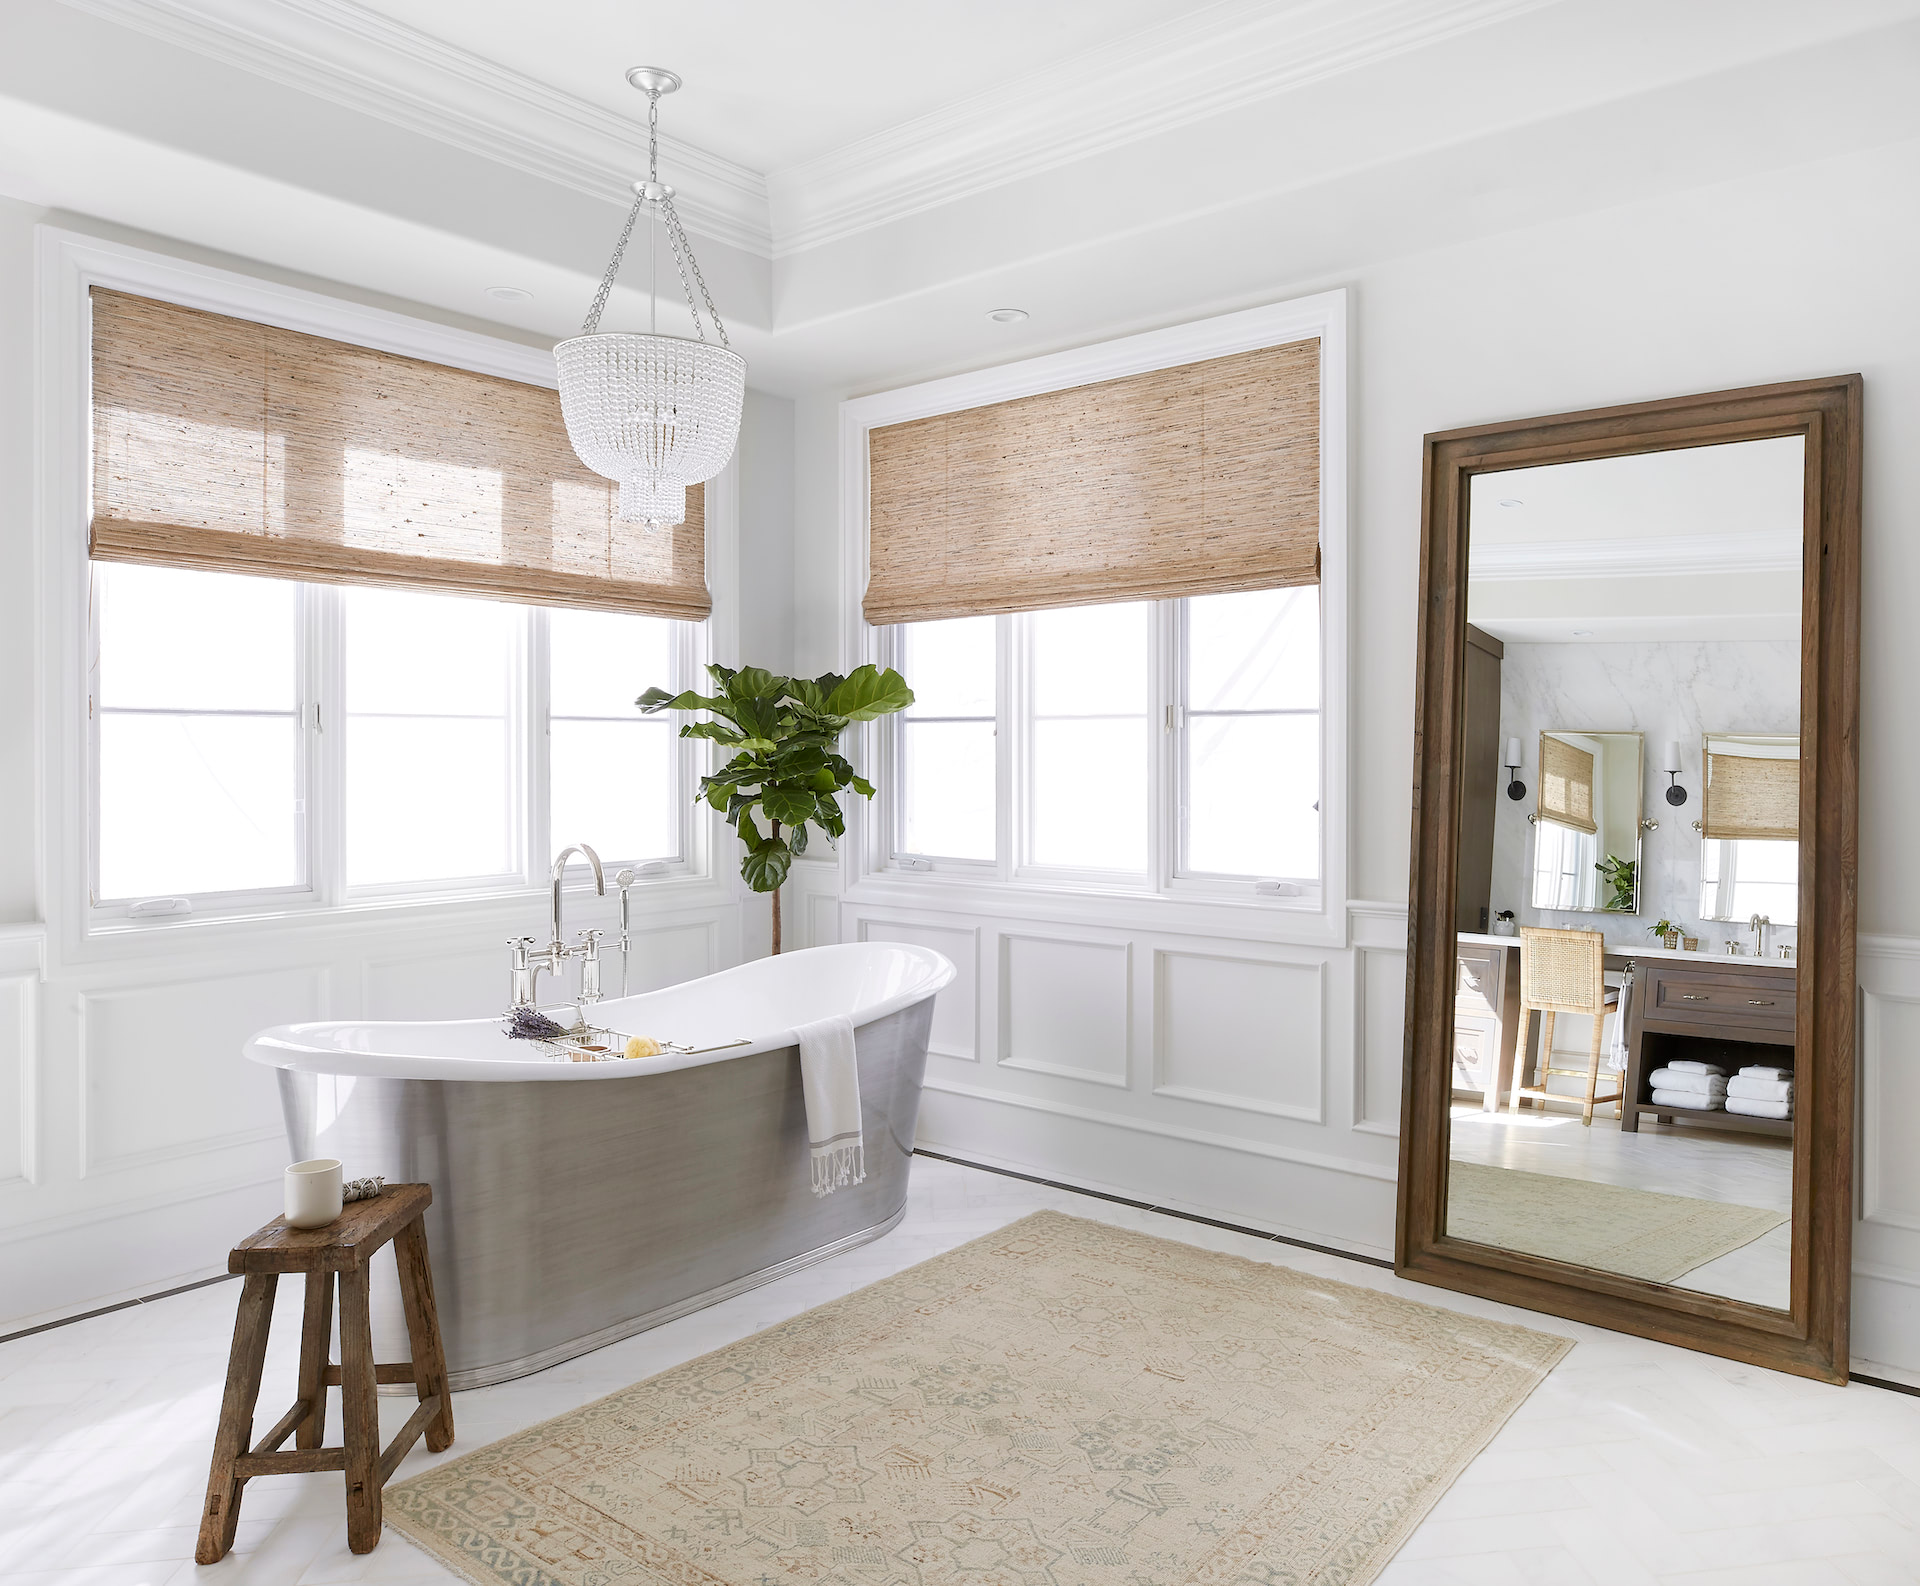 A bathroom with a large tub and two windows covered by woven woods | Everhem